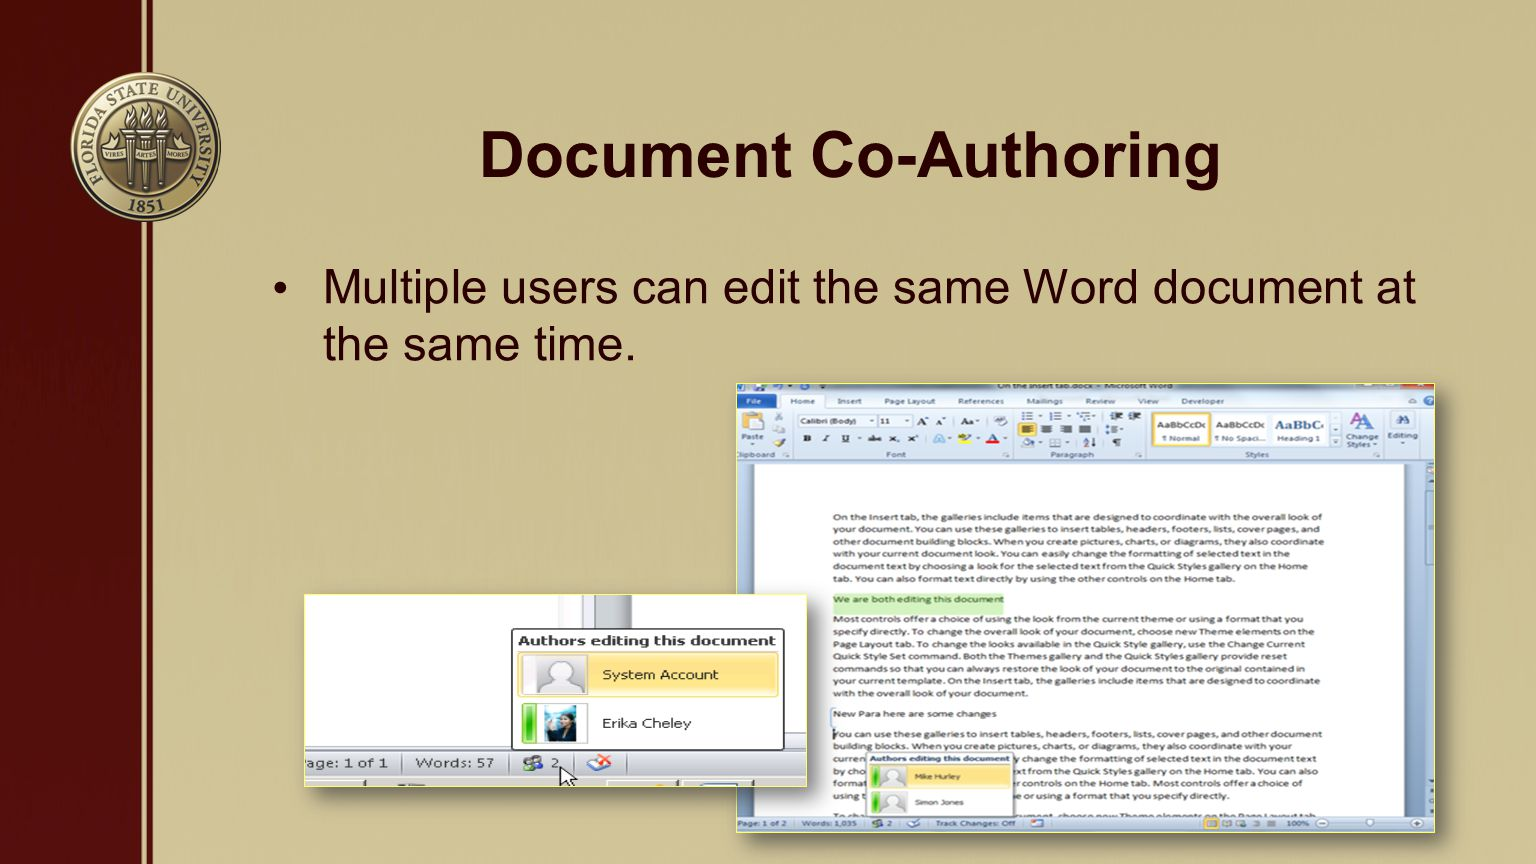 Document Co-Authoring Multiple users can edit the same Word document at the same time.